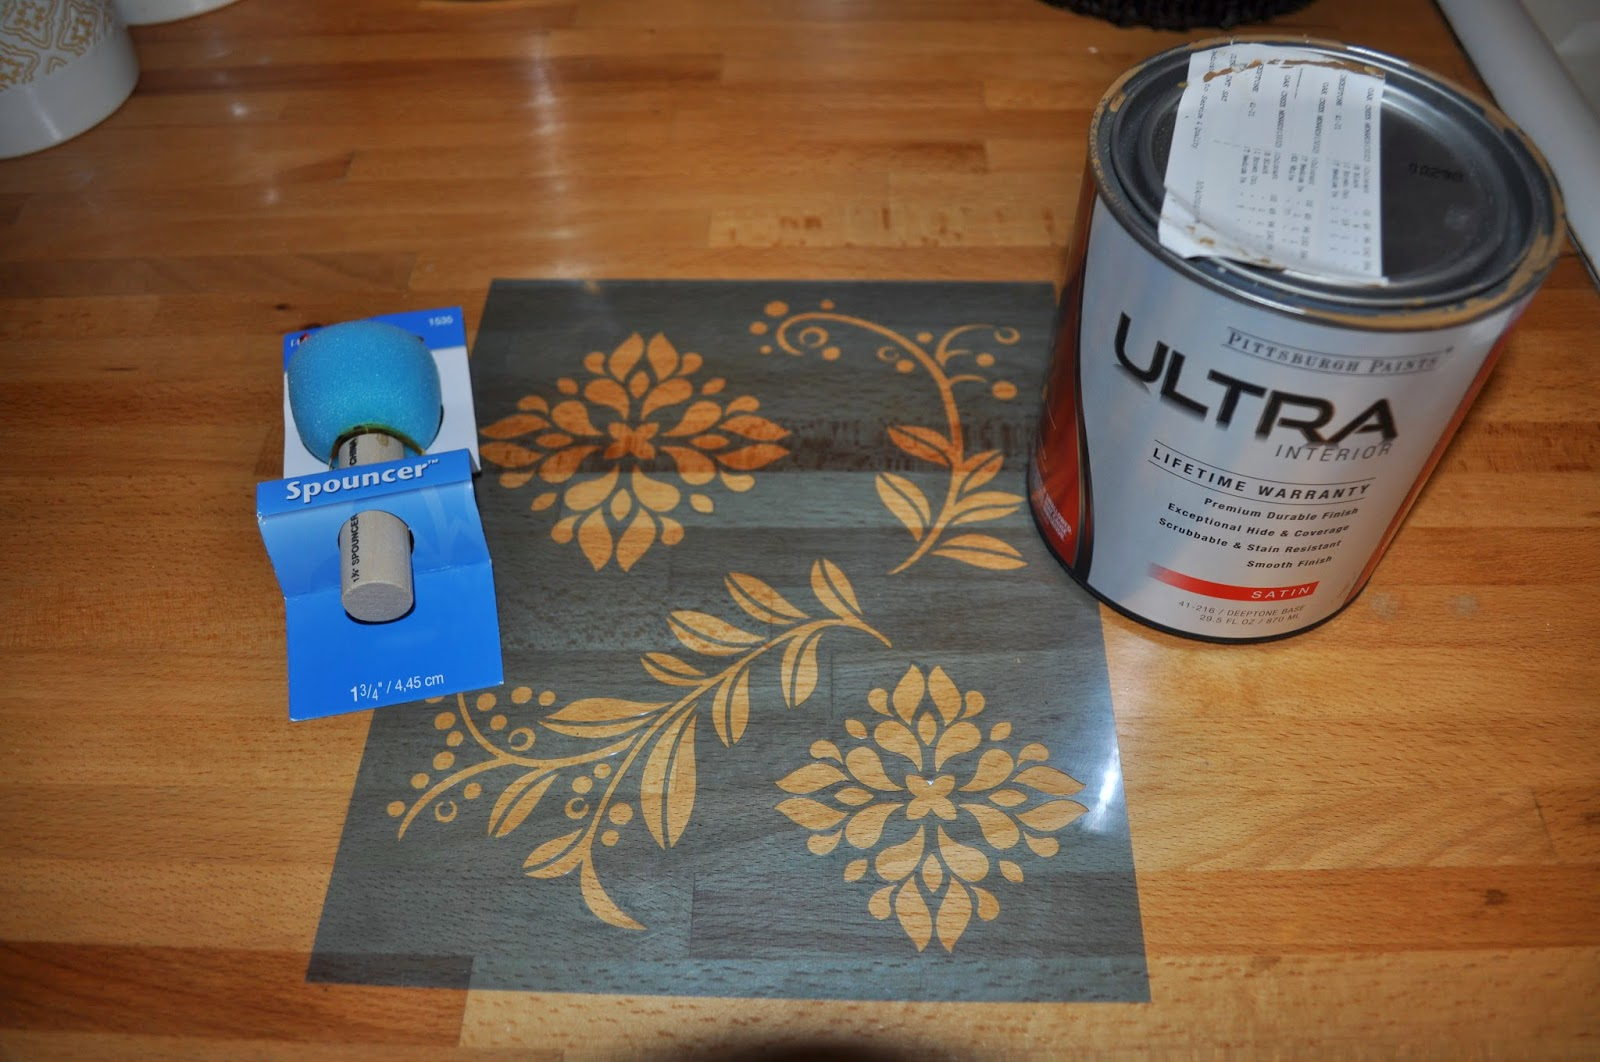 polyurethane, varathane, floors, stencil, stenciling, coco rum, behr paint, wood lily, dutch boy paint, Joann fabrics, floors, particle board, DIY, reno